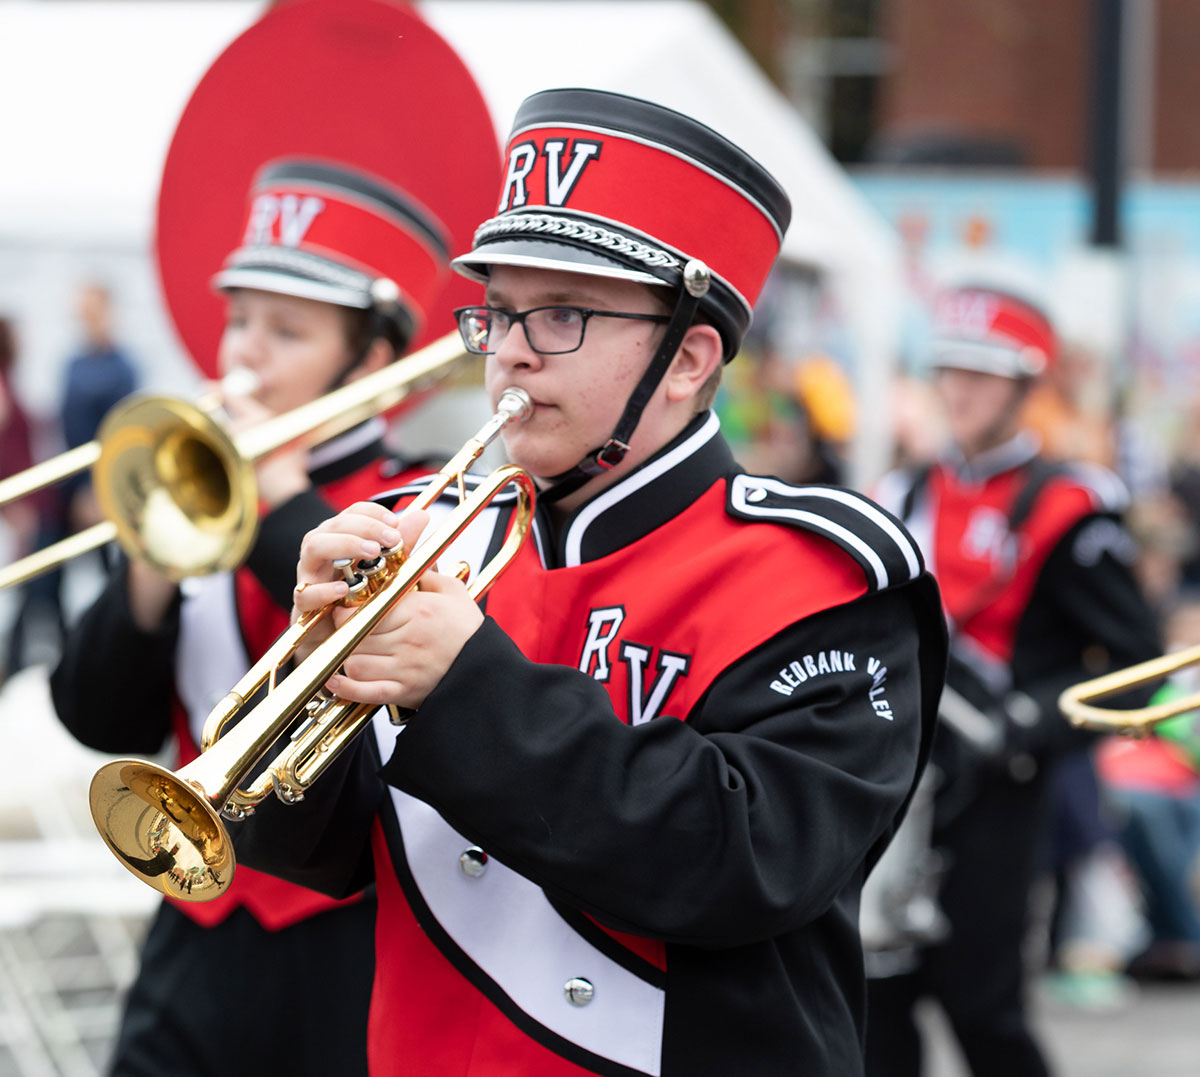 Class A Marching Band 1st Place Winner Redbank Valley. Photo by Dave Cyphert of ProPoint Media Photography.